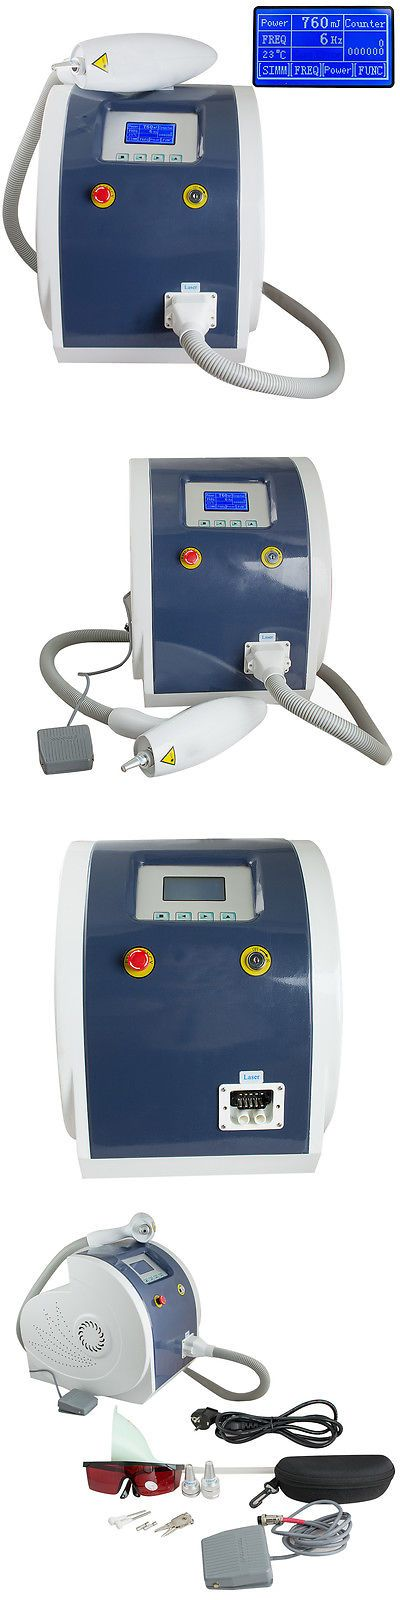 Tattoo Removal Machines: 2016 New Profession Laser Tattoo Eyebrow Pigment Removal Beauty Equipment BUY IT NOW ONLY: $1135.0